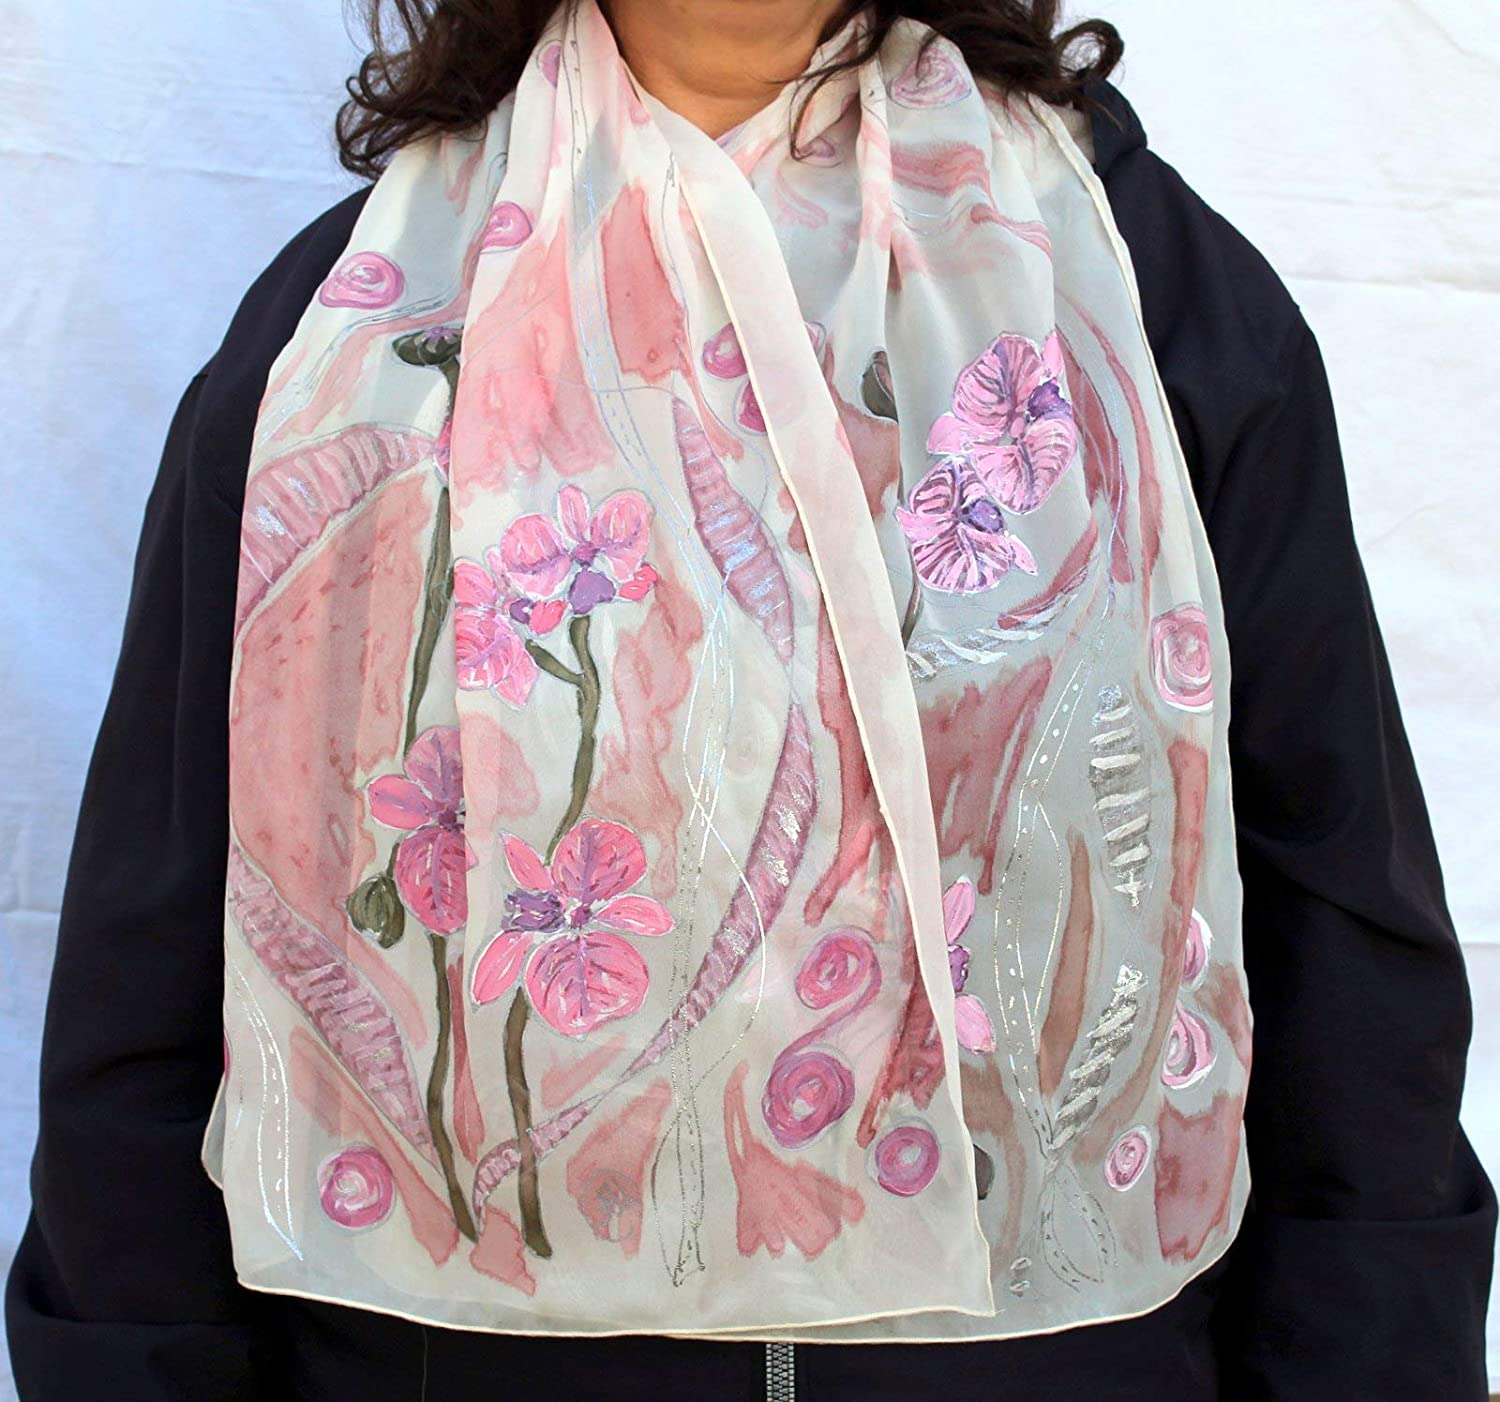 Amazon Com Batik Fashion Silk Painting Ideas Gift For Her Hand Painted Silk Scarf Scarf Gift For Wife Orchids Long Floral Scarf Floral Design Scarf Orchids Scarf Painted Gift Woman White Scarf Handmade